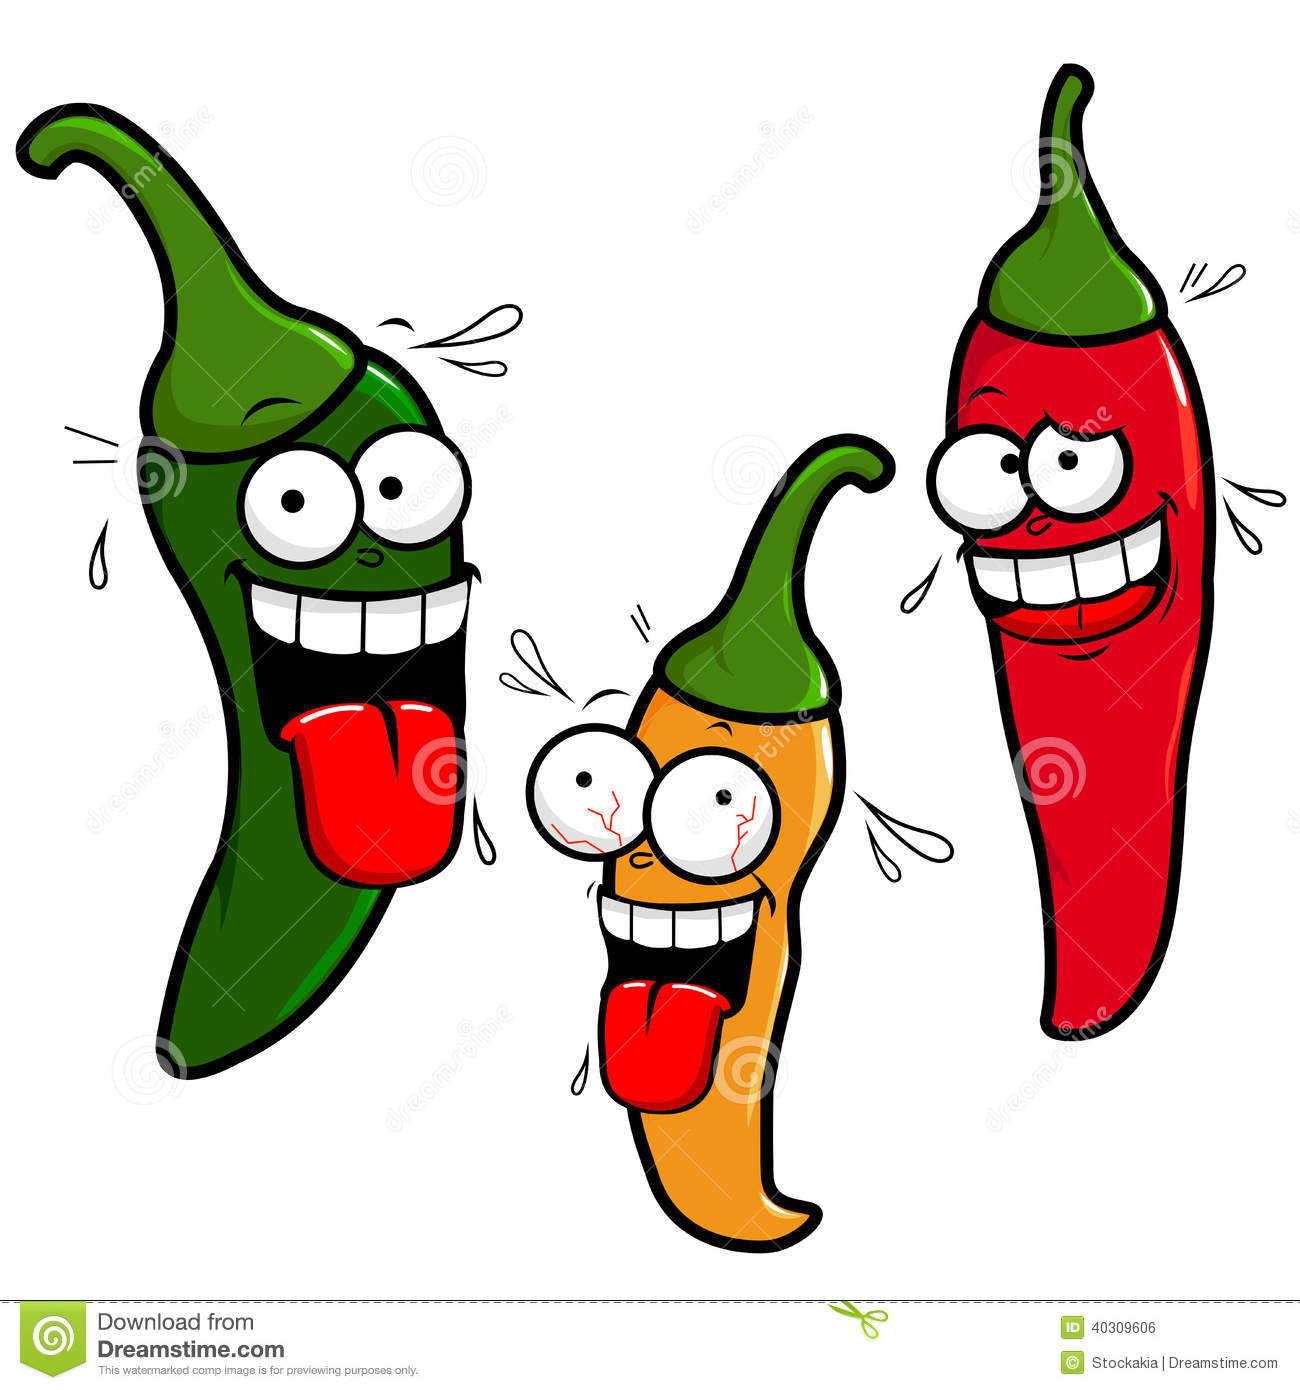 Animated chili pepper clipart.